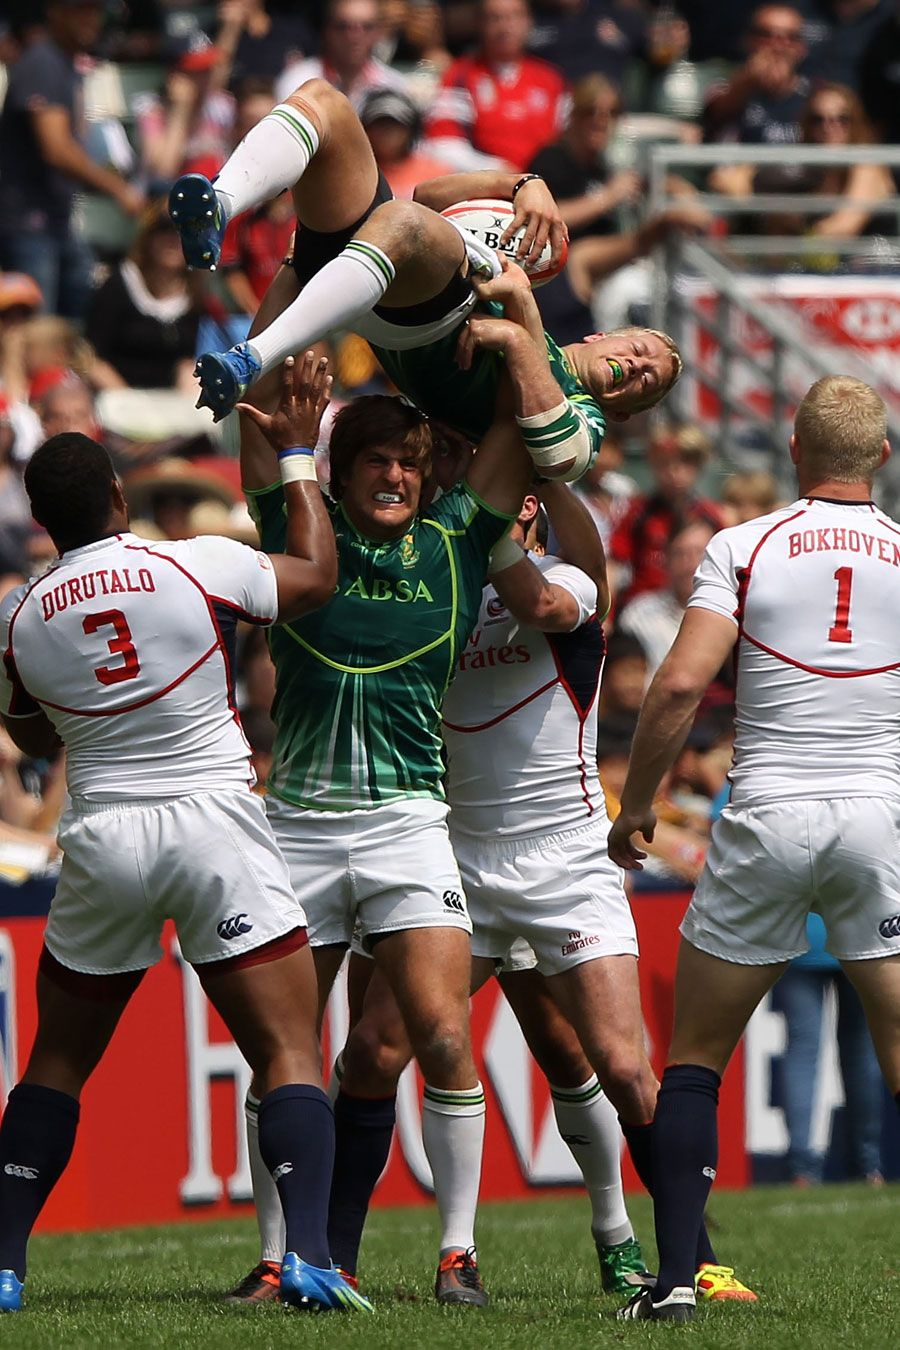 South Africa's Kyle Brown claims a lineout Rugby